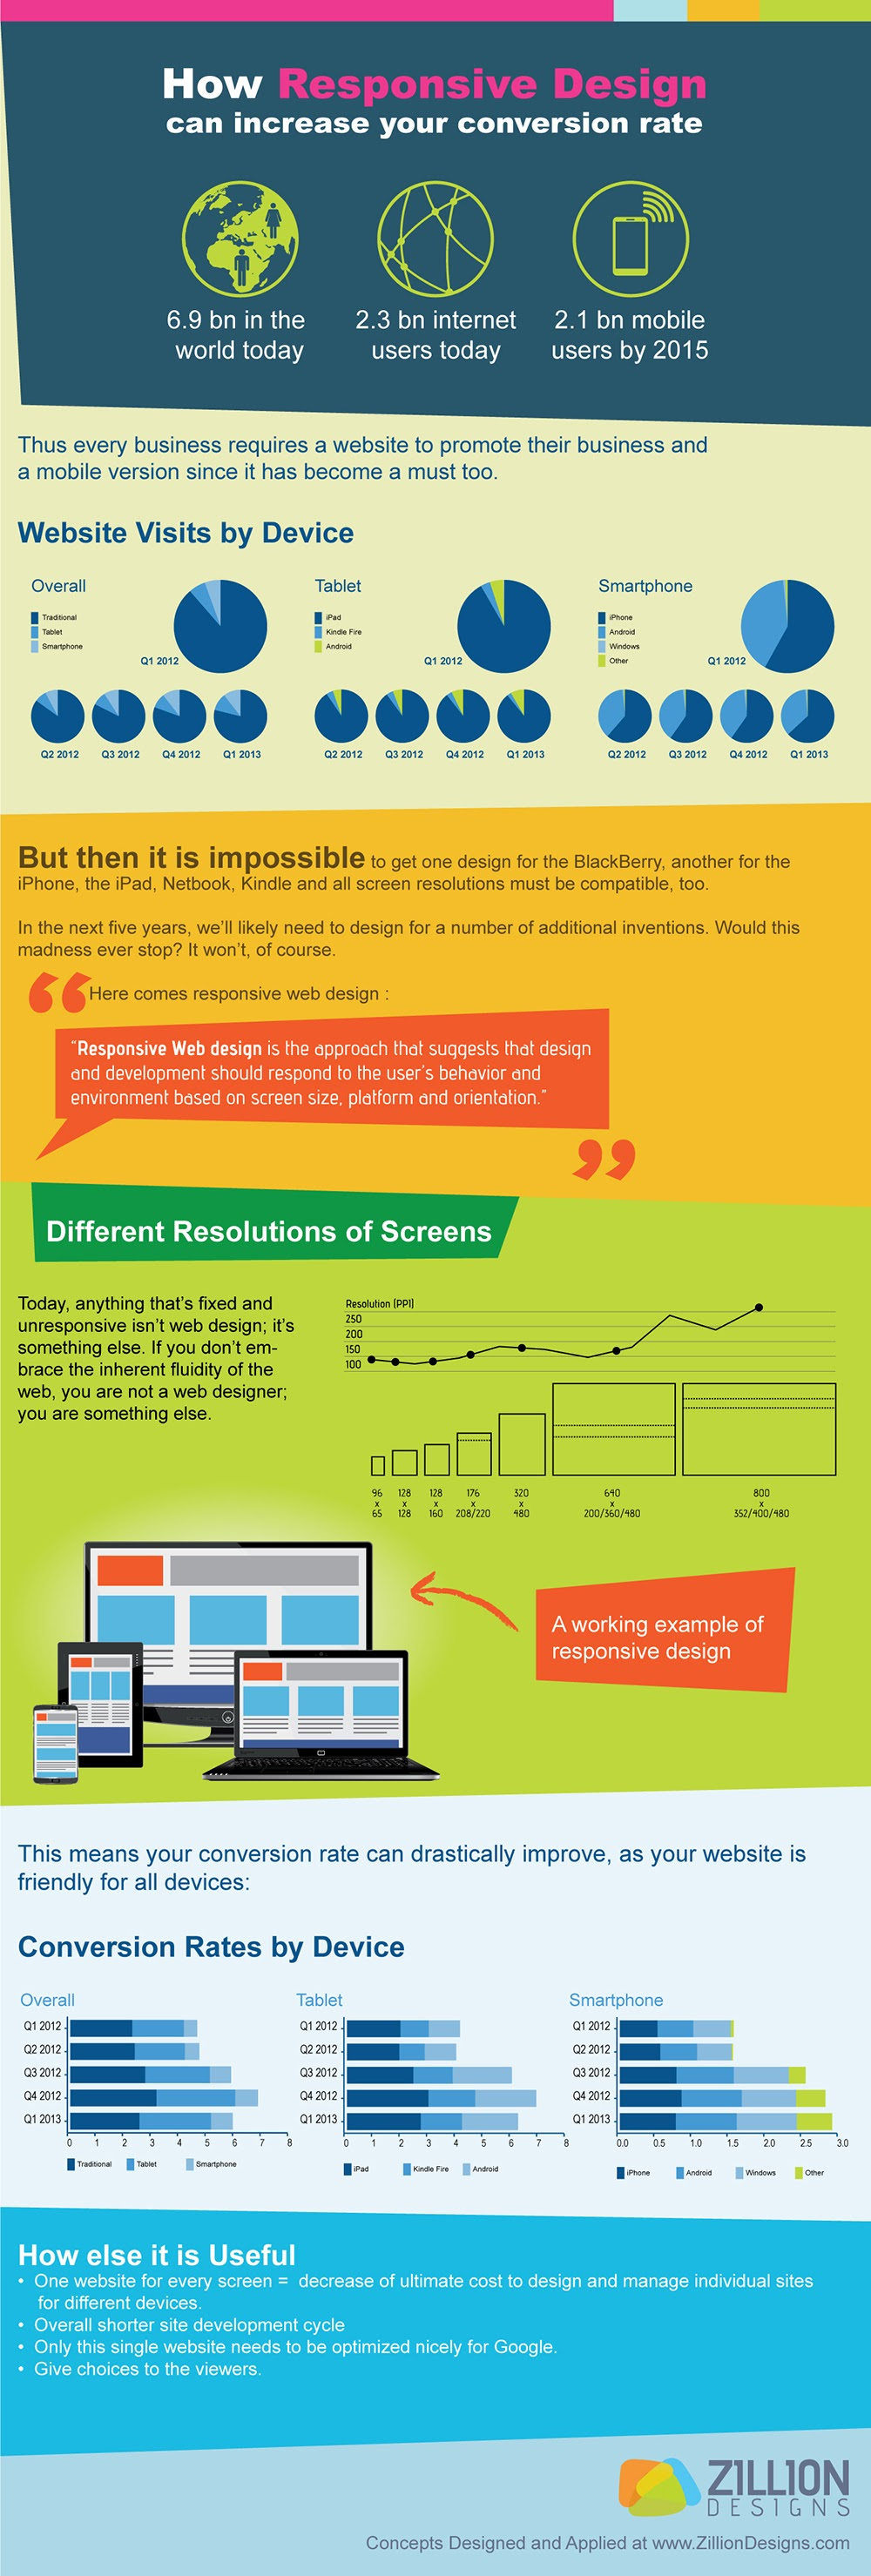 How-Responsive-Design-Can-Increase-Your-Conversion-Rate #Infographic